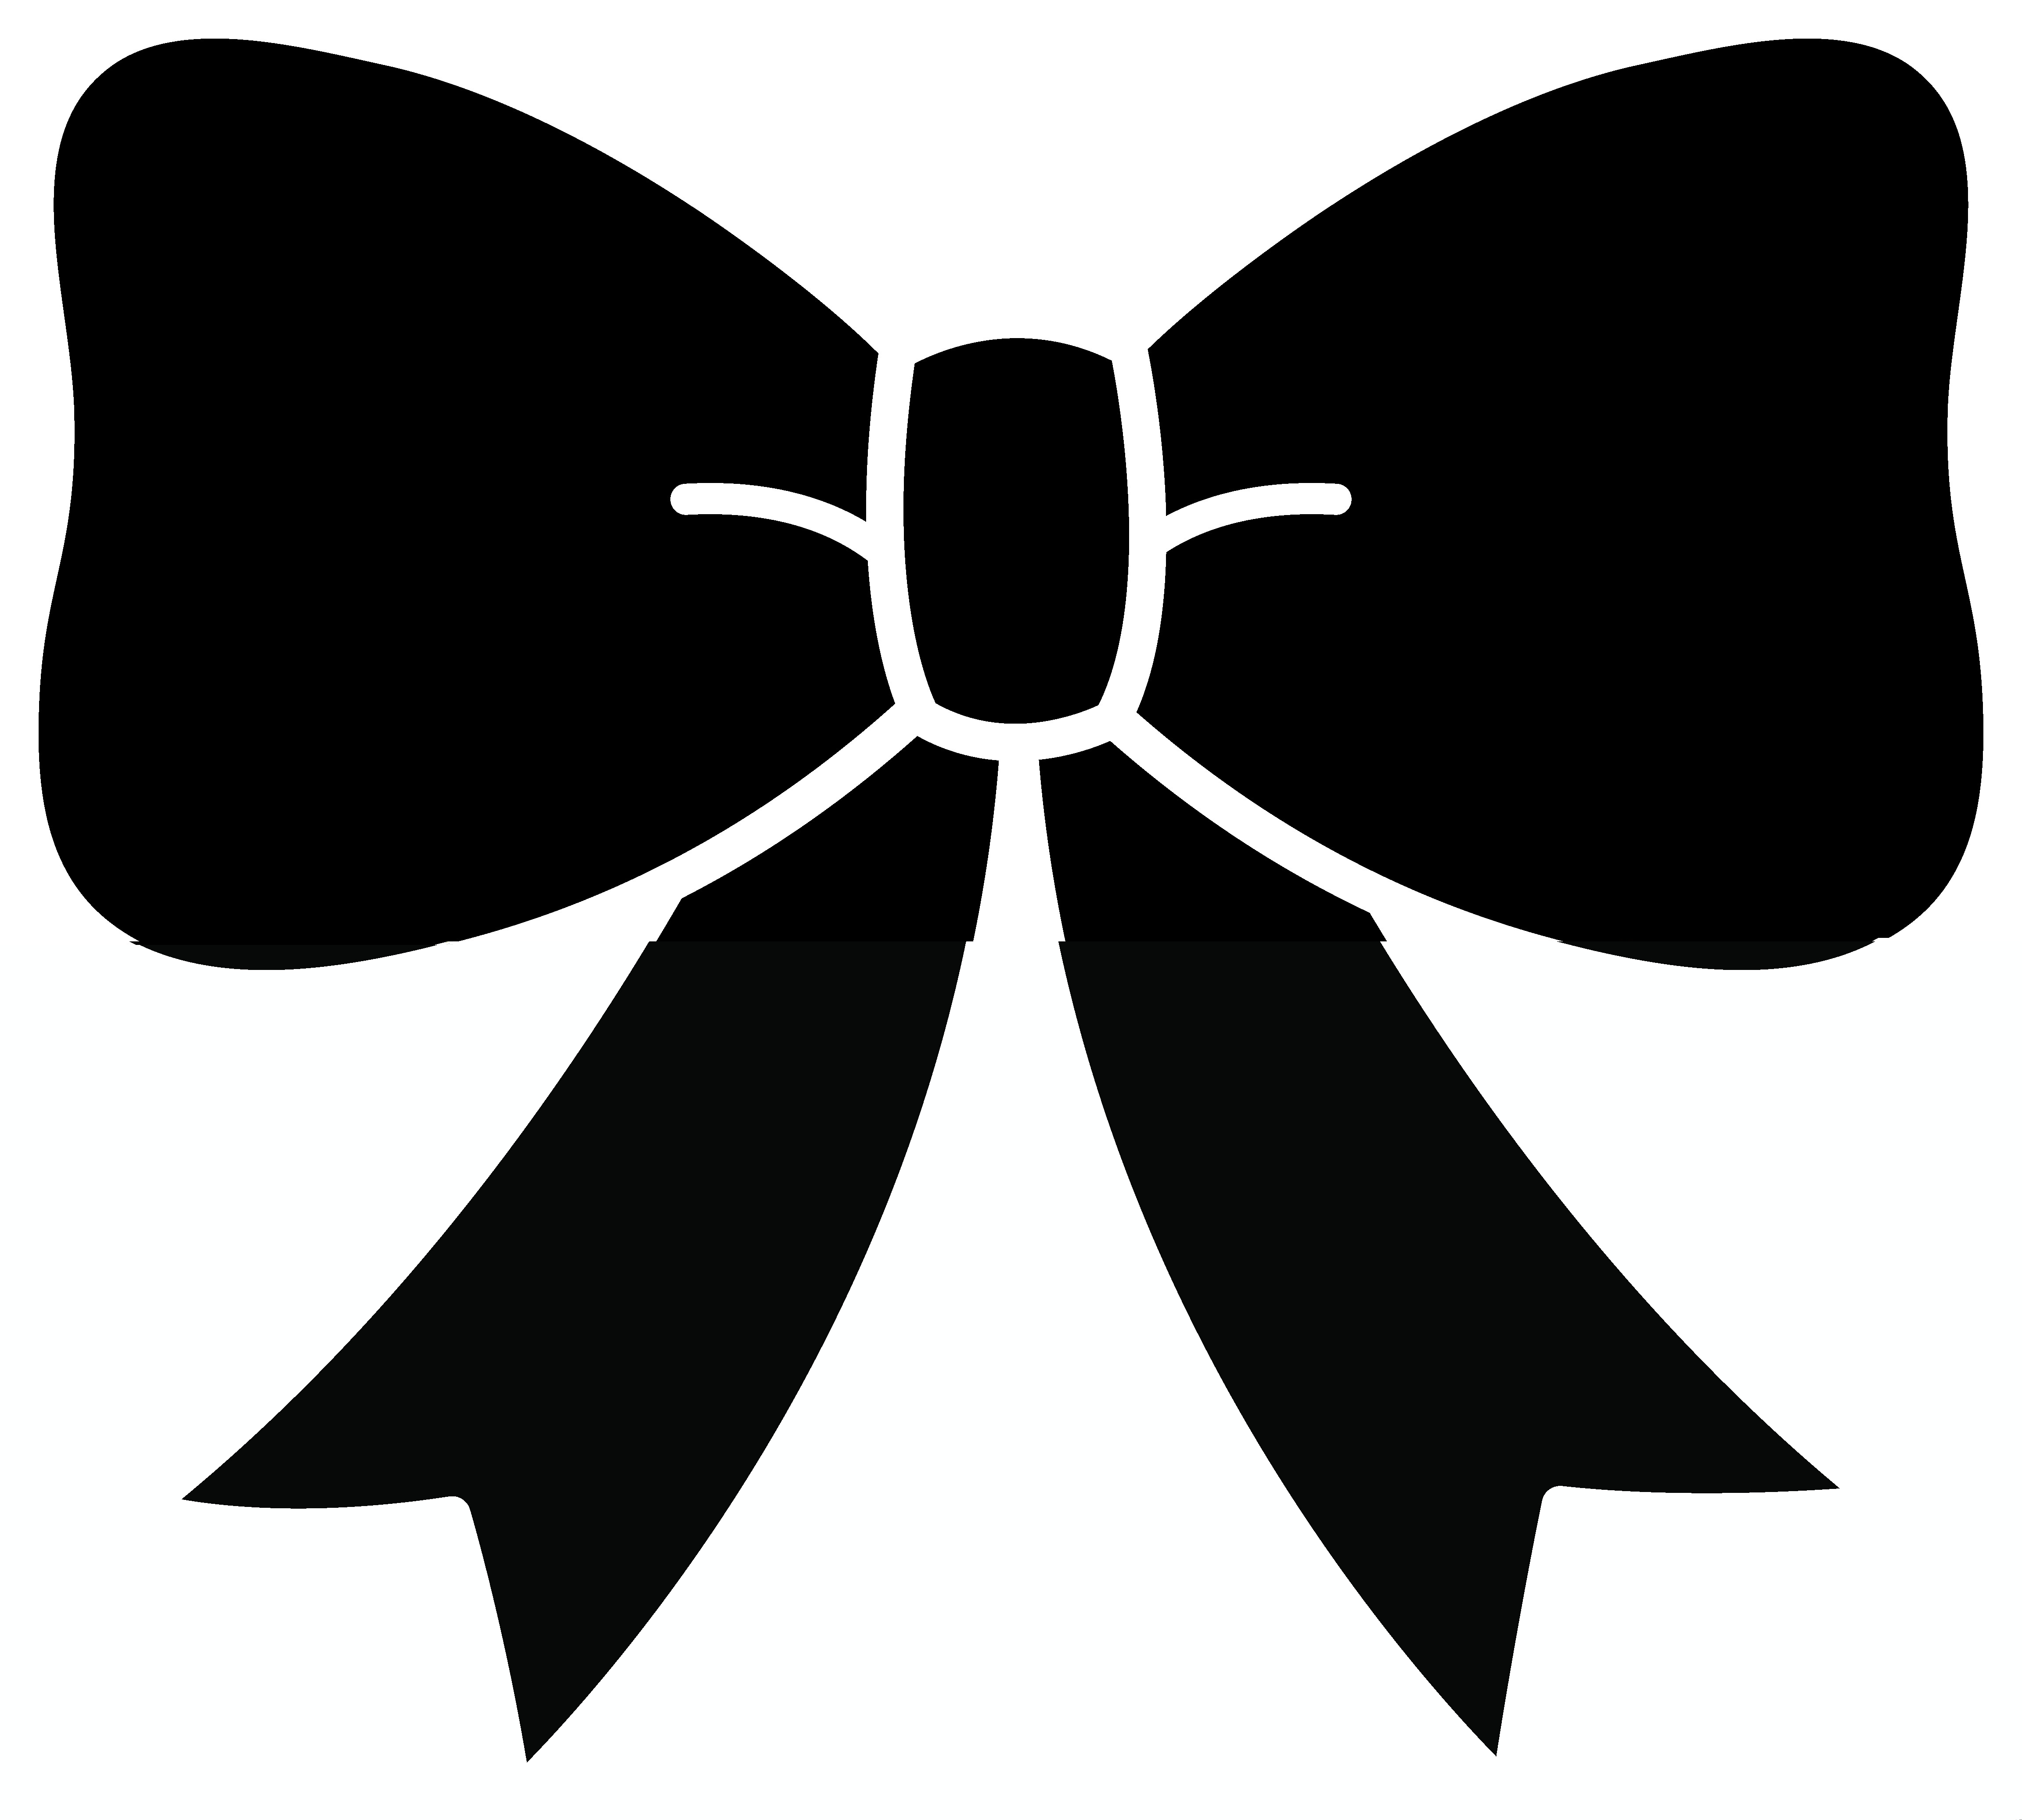 Bows clipart hair bow. Rescuedesk me